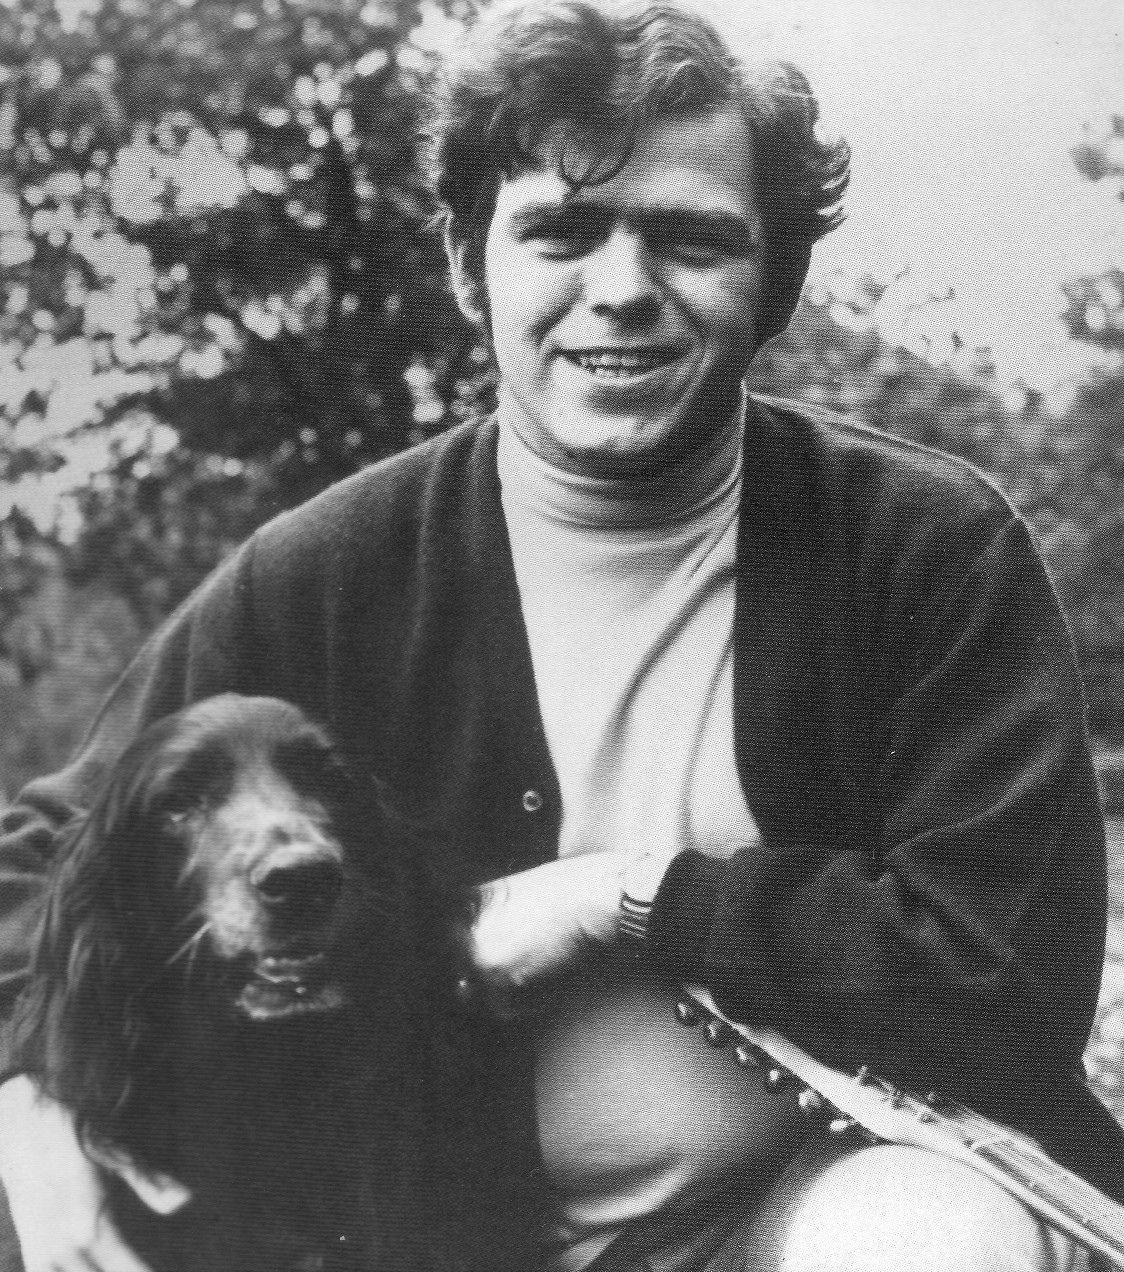 Photo: a younger Tim, with spaniel